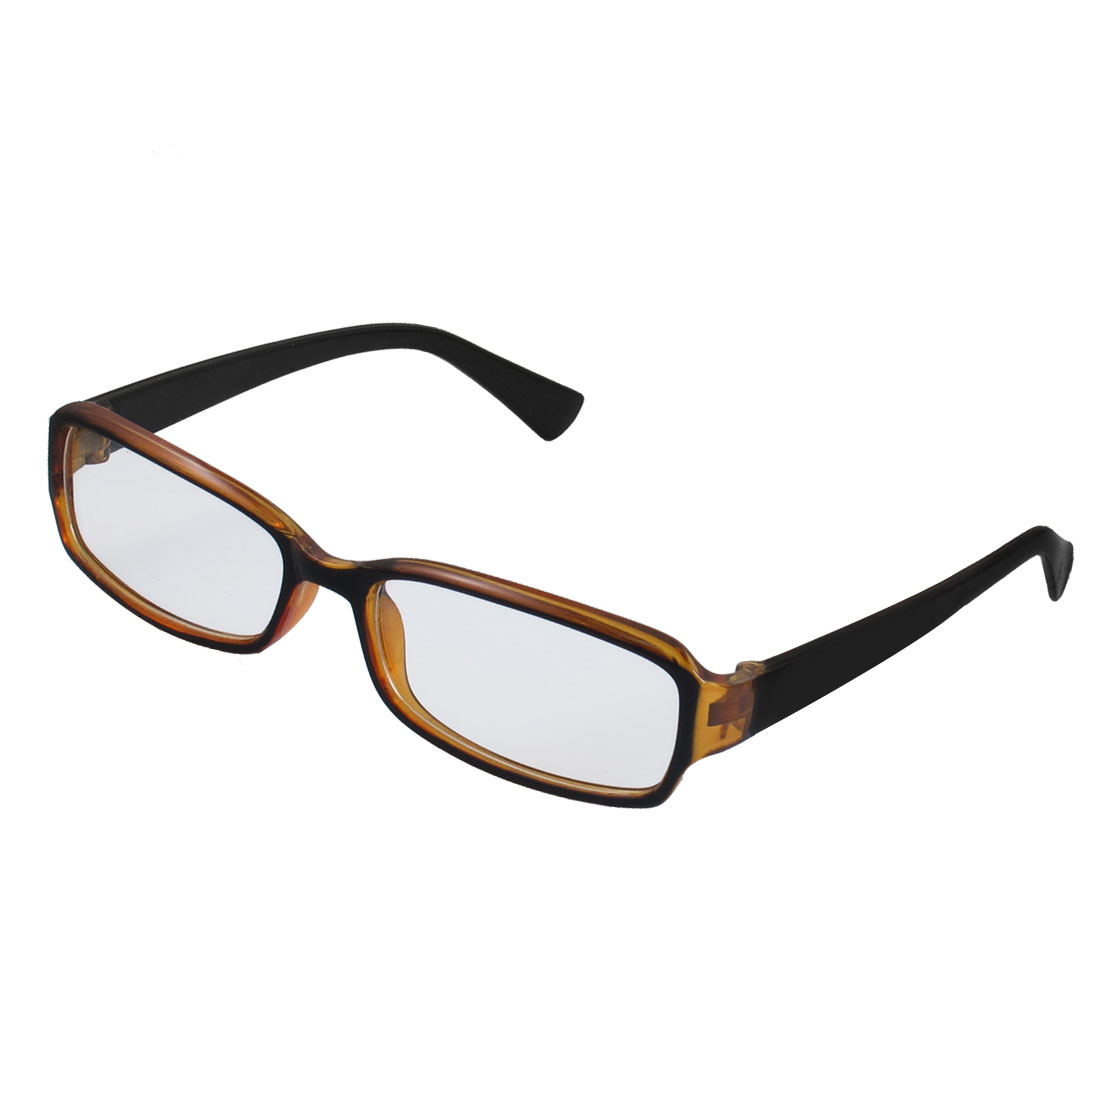 Lady Full Frame Rectangle Lens Plain Plano Glasses Eyeglass Black Brown